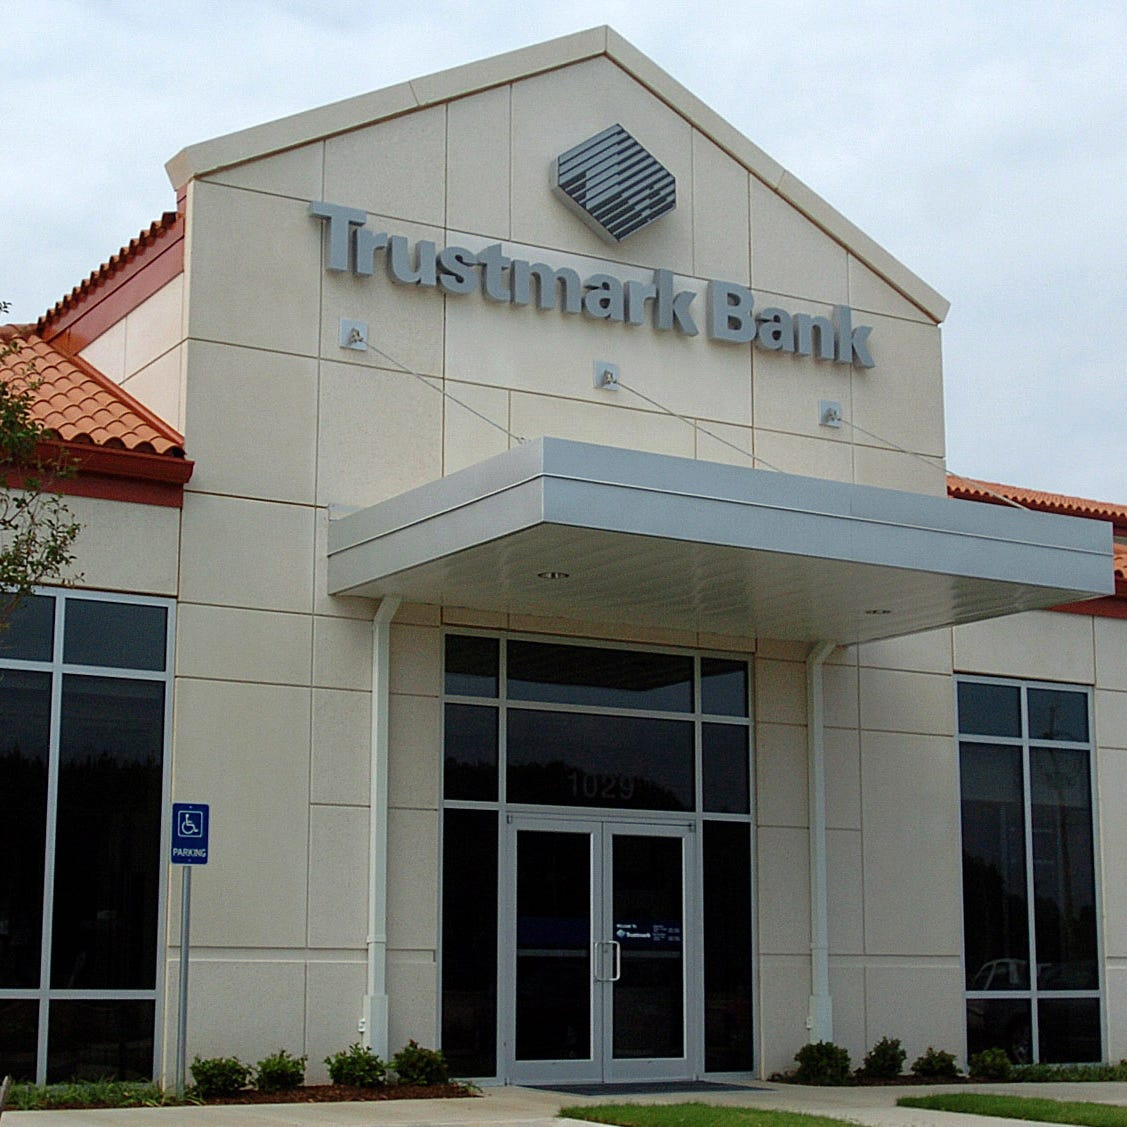 Mississippi women file class action lawsuit against Trustmark Bank over overdraft fees